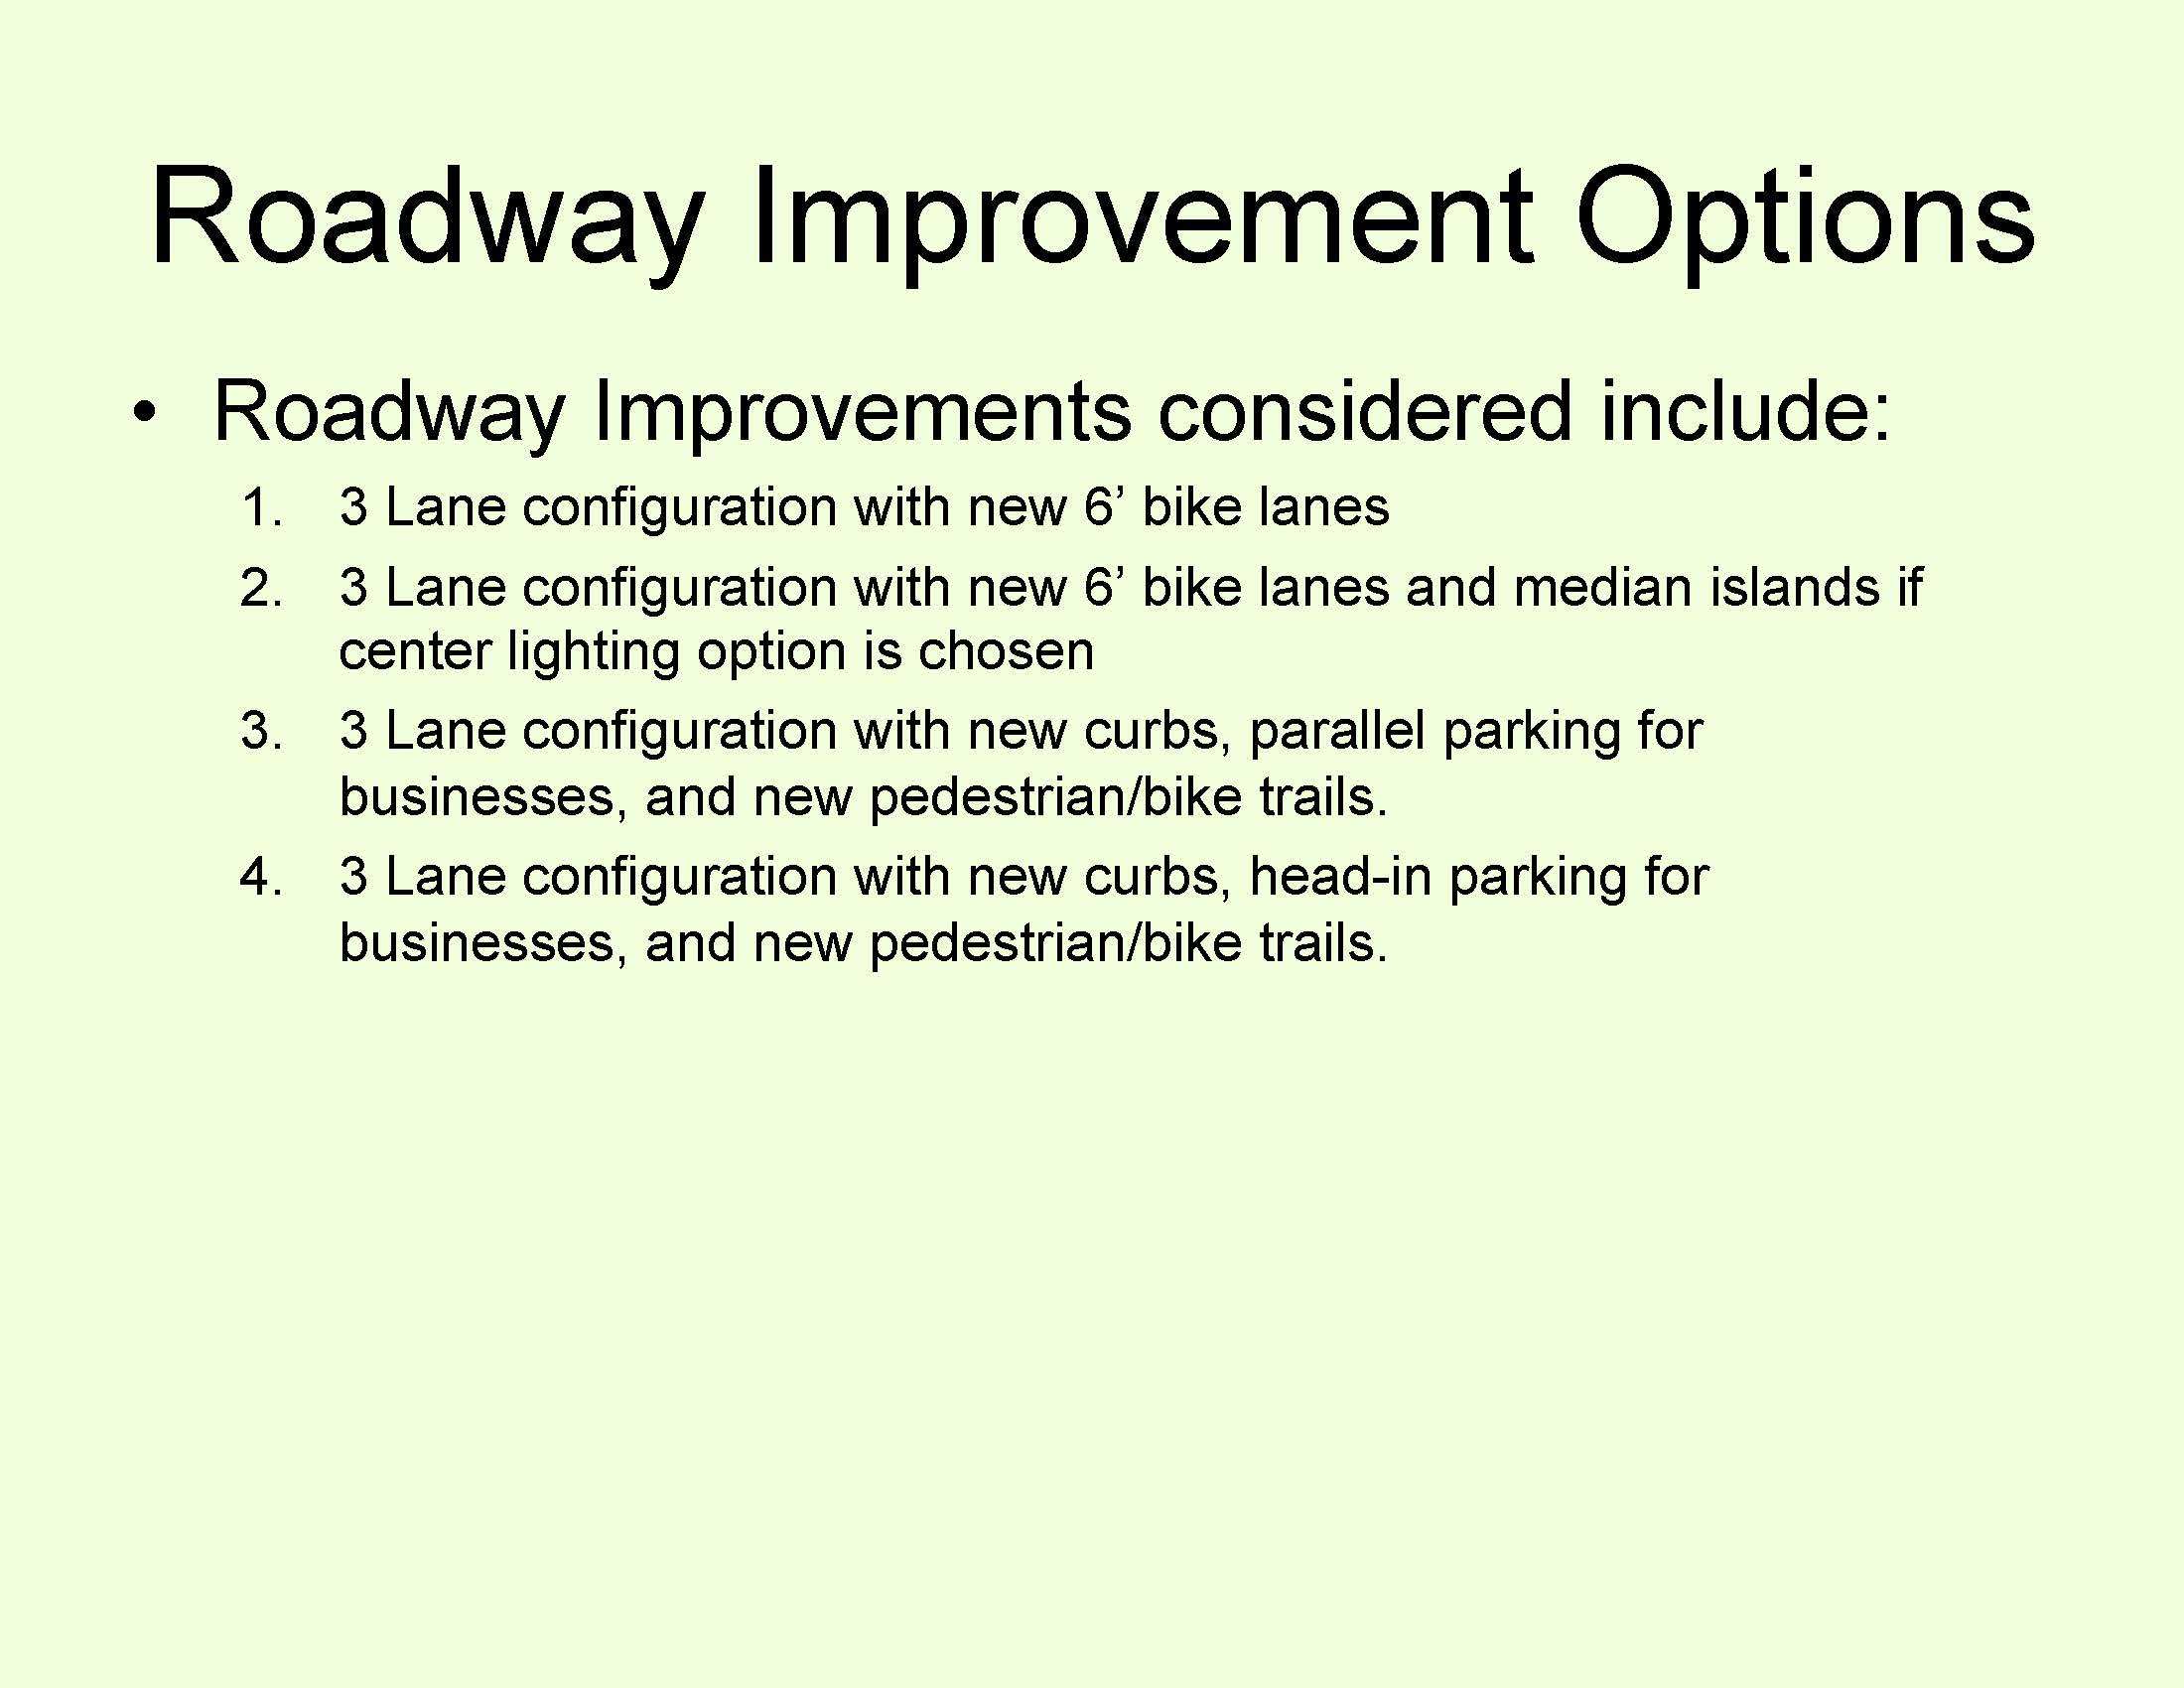 4th Street Improvement Project Proposal - 2013_Page_15.jpg